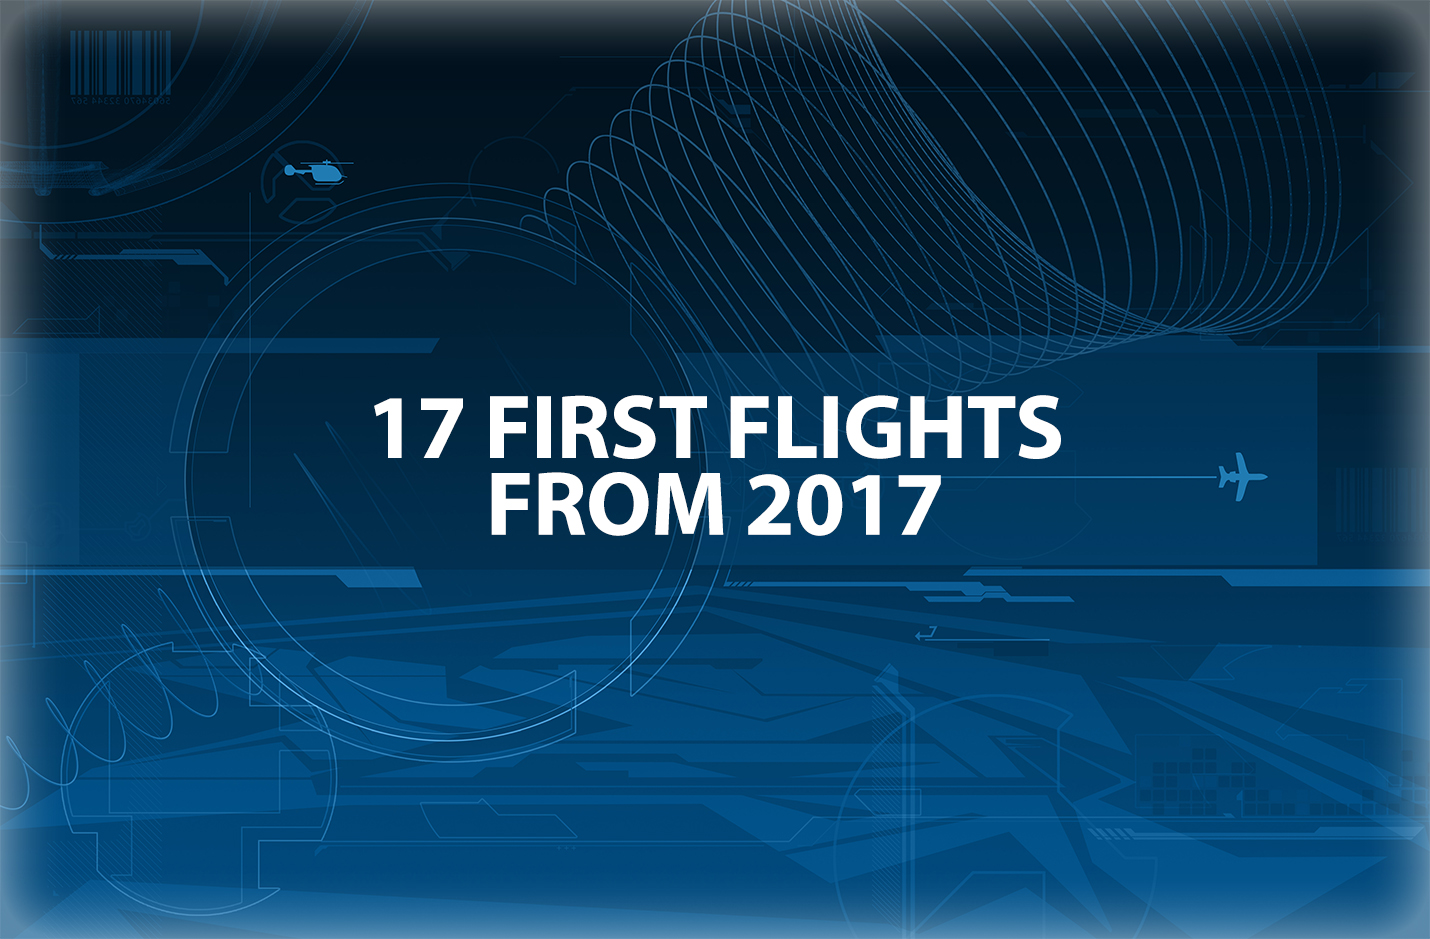 17 First Flights from 2017 - text box image